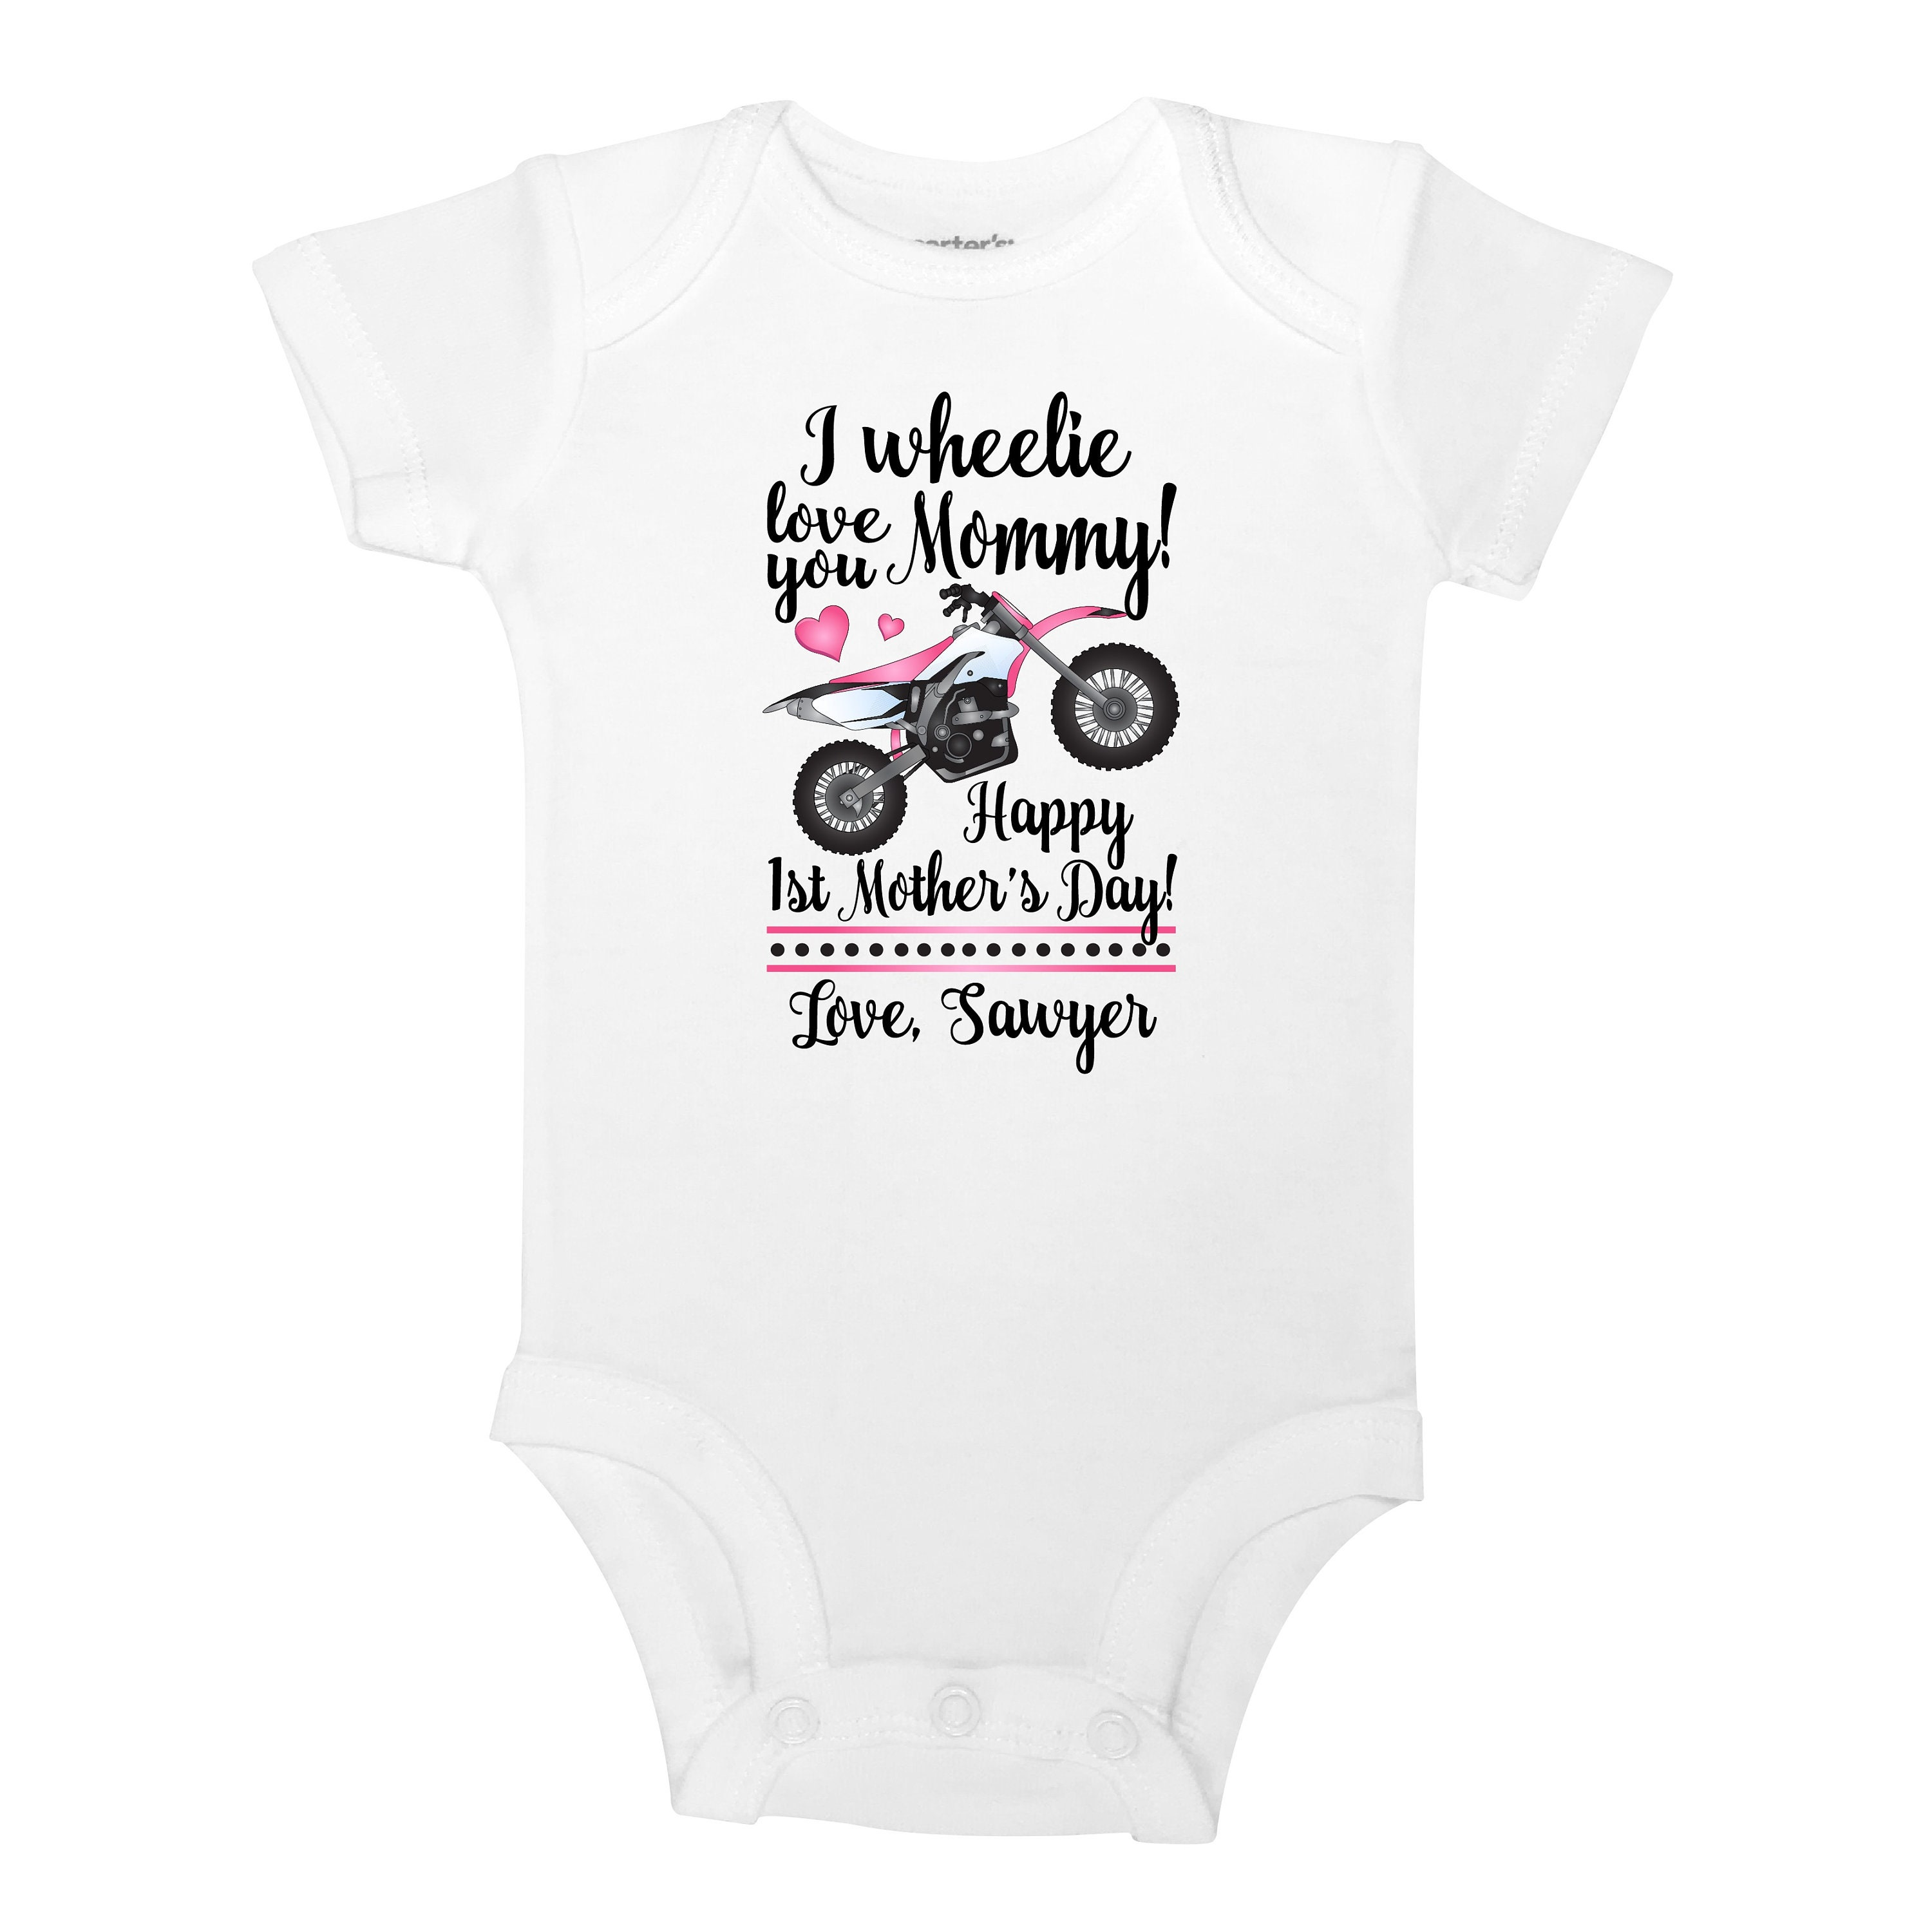 Personalize The Name I Wheelie Love You Mommy 1st